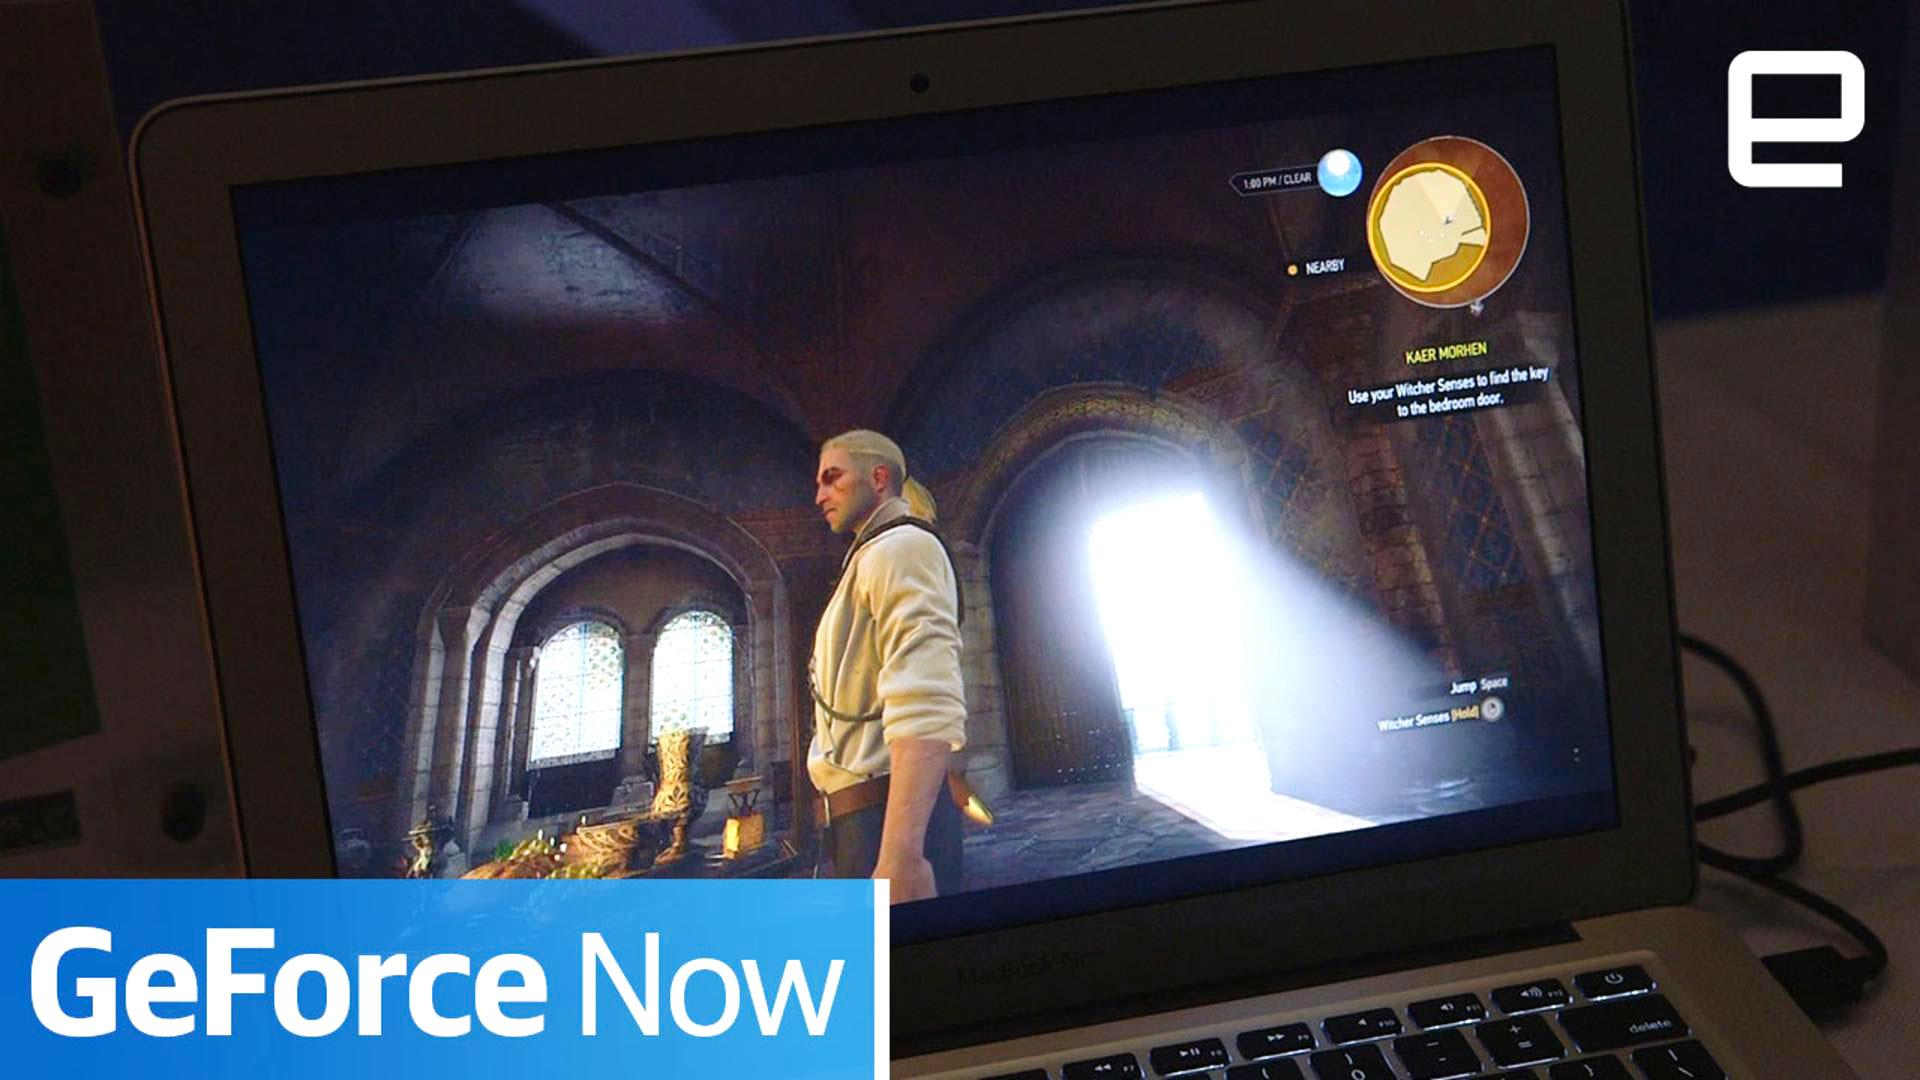 NVIDIA's GeForce Now let me play 'The Witcher 3' on a